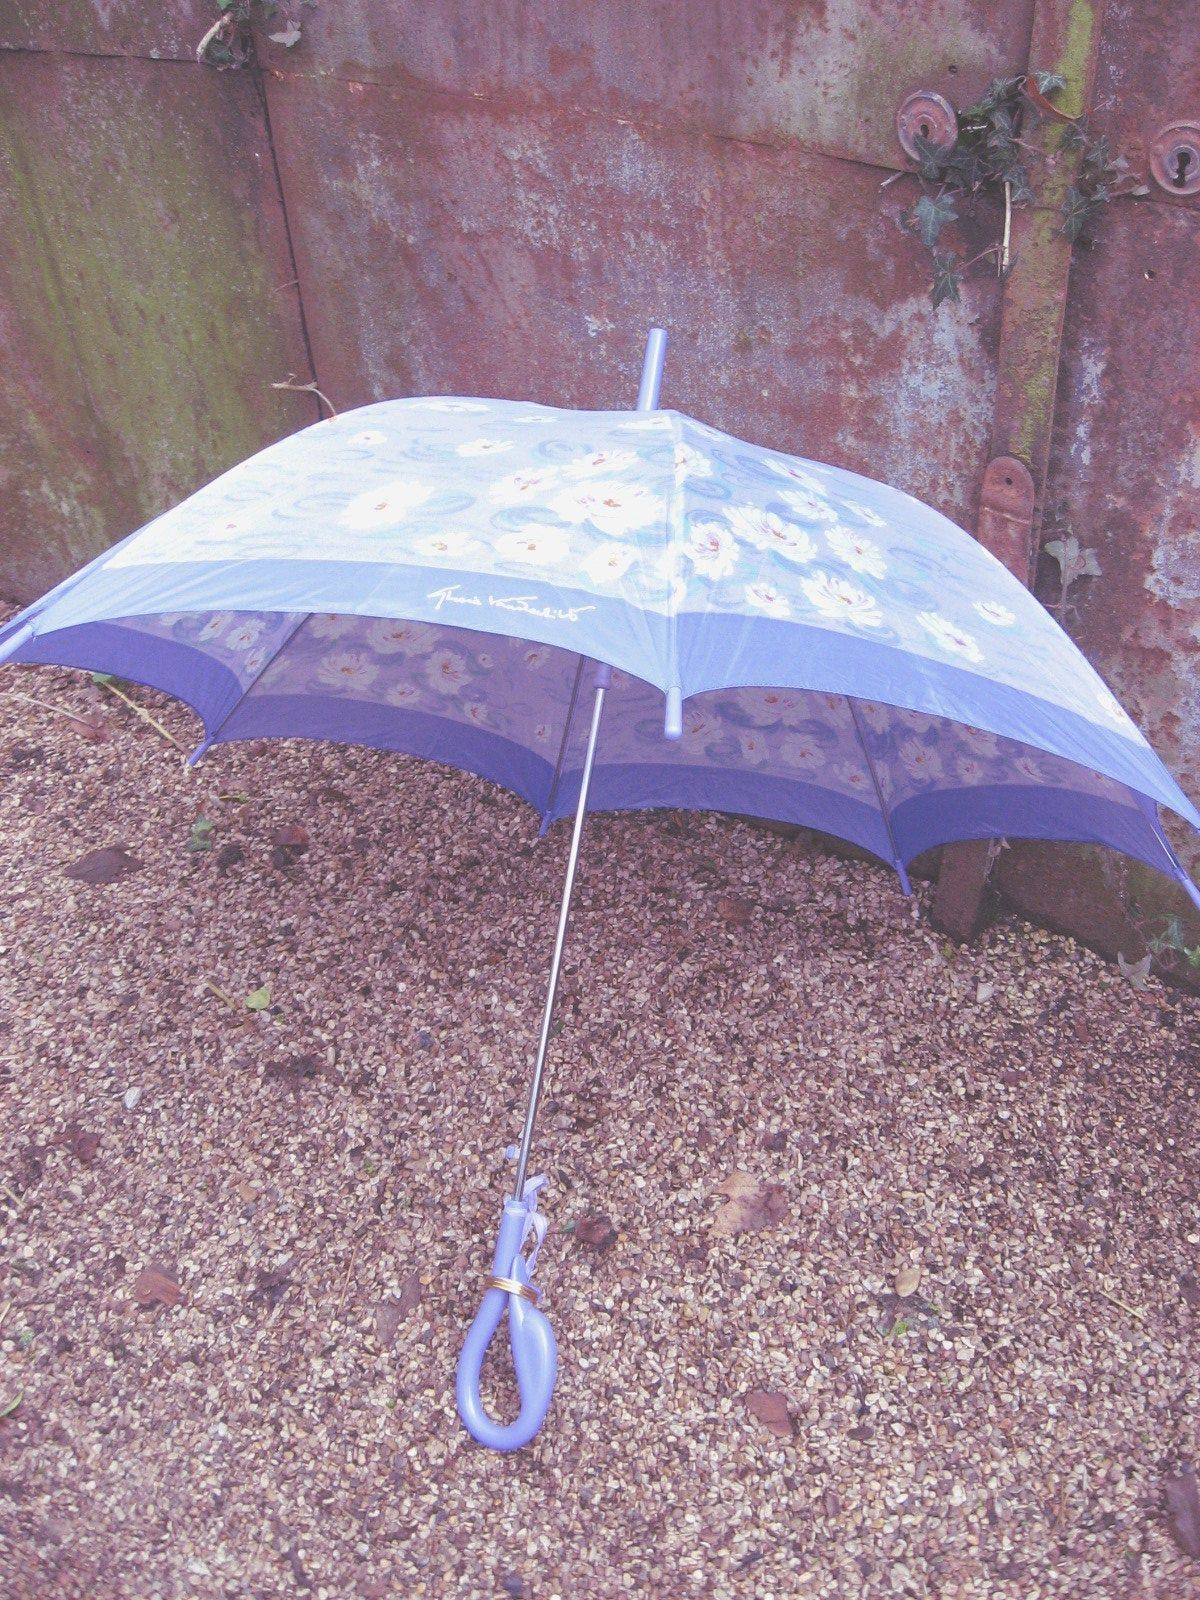 Gloria Vanderbilt Monet impressionist style large umbrella. Lilac swan handle, water lily pond design parasol and gold ring closure.